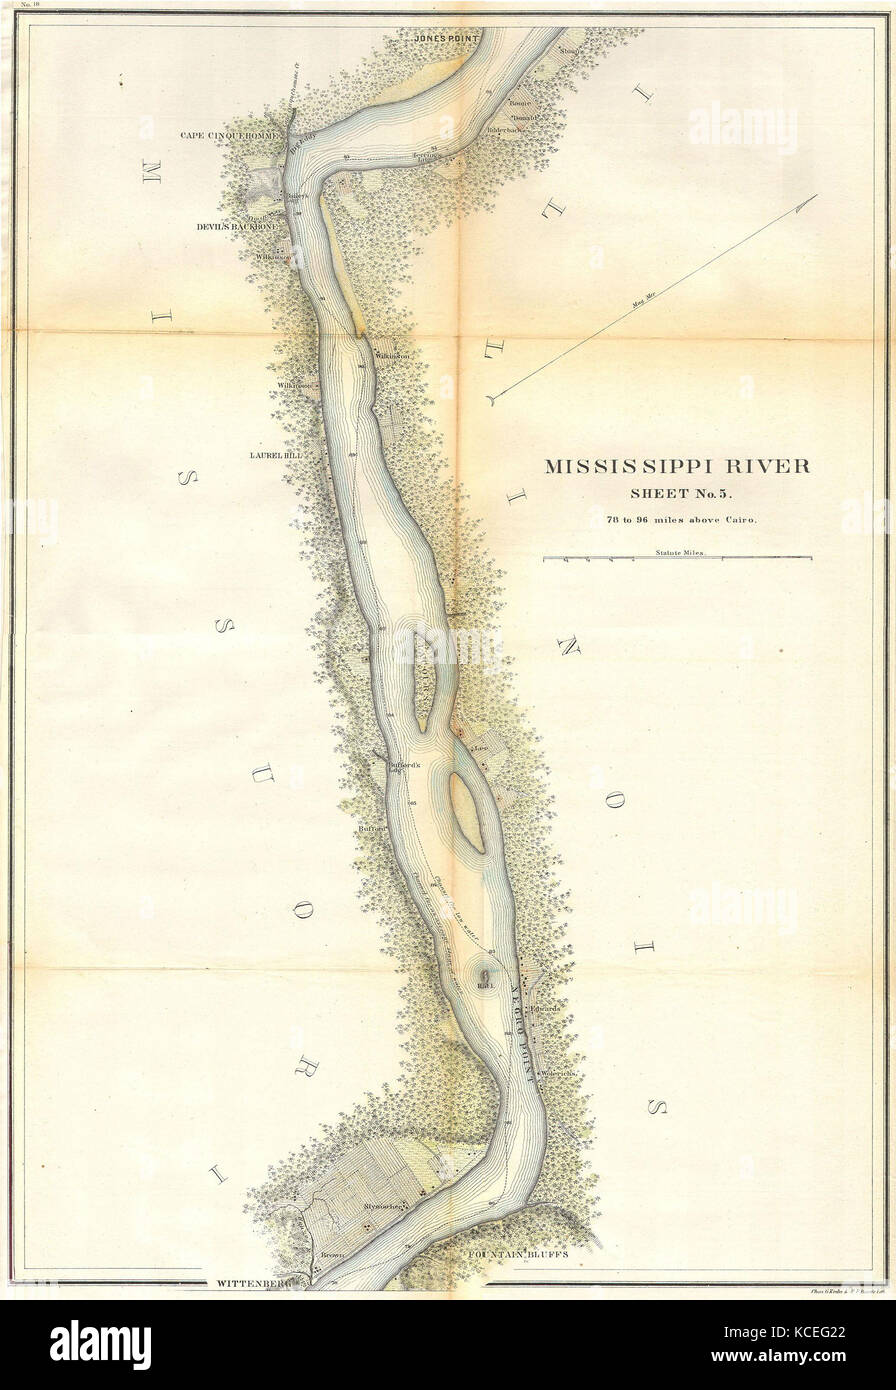 1865, U.S.C.S. Map of the Mississippi River 78 to 98 miles above Cairo, Illinois Stock Photo